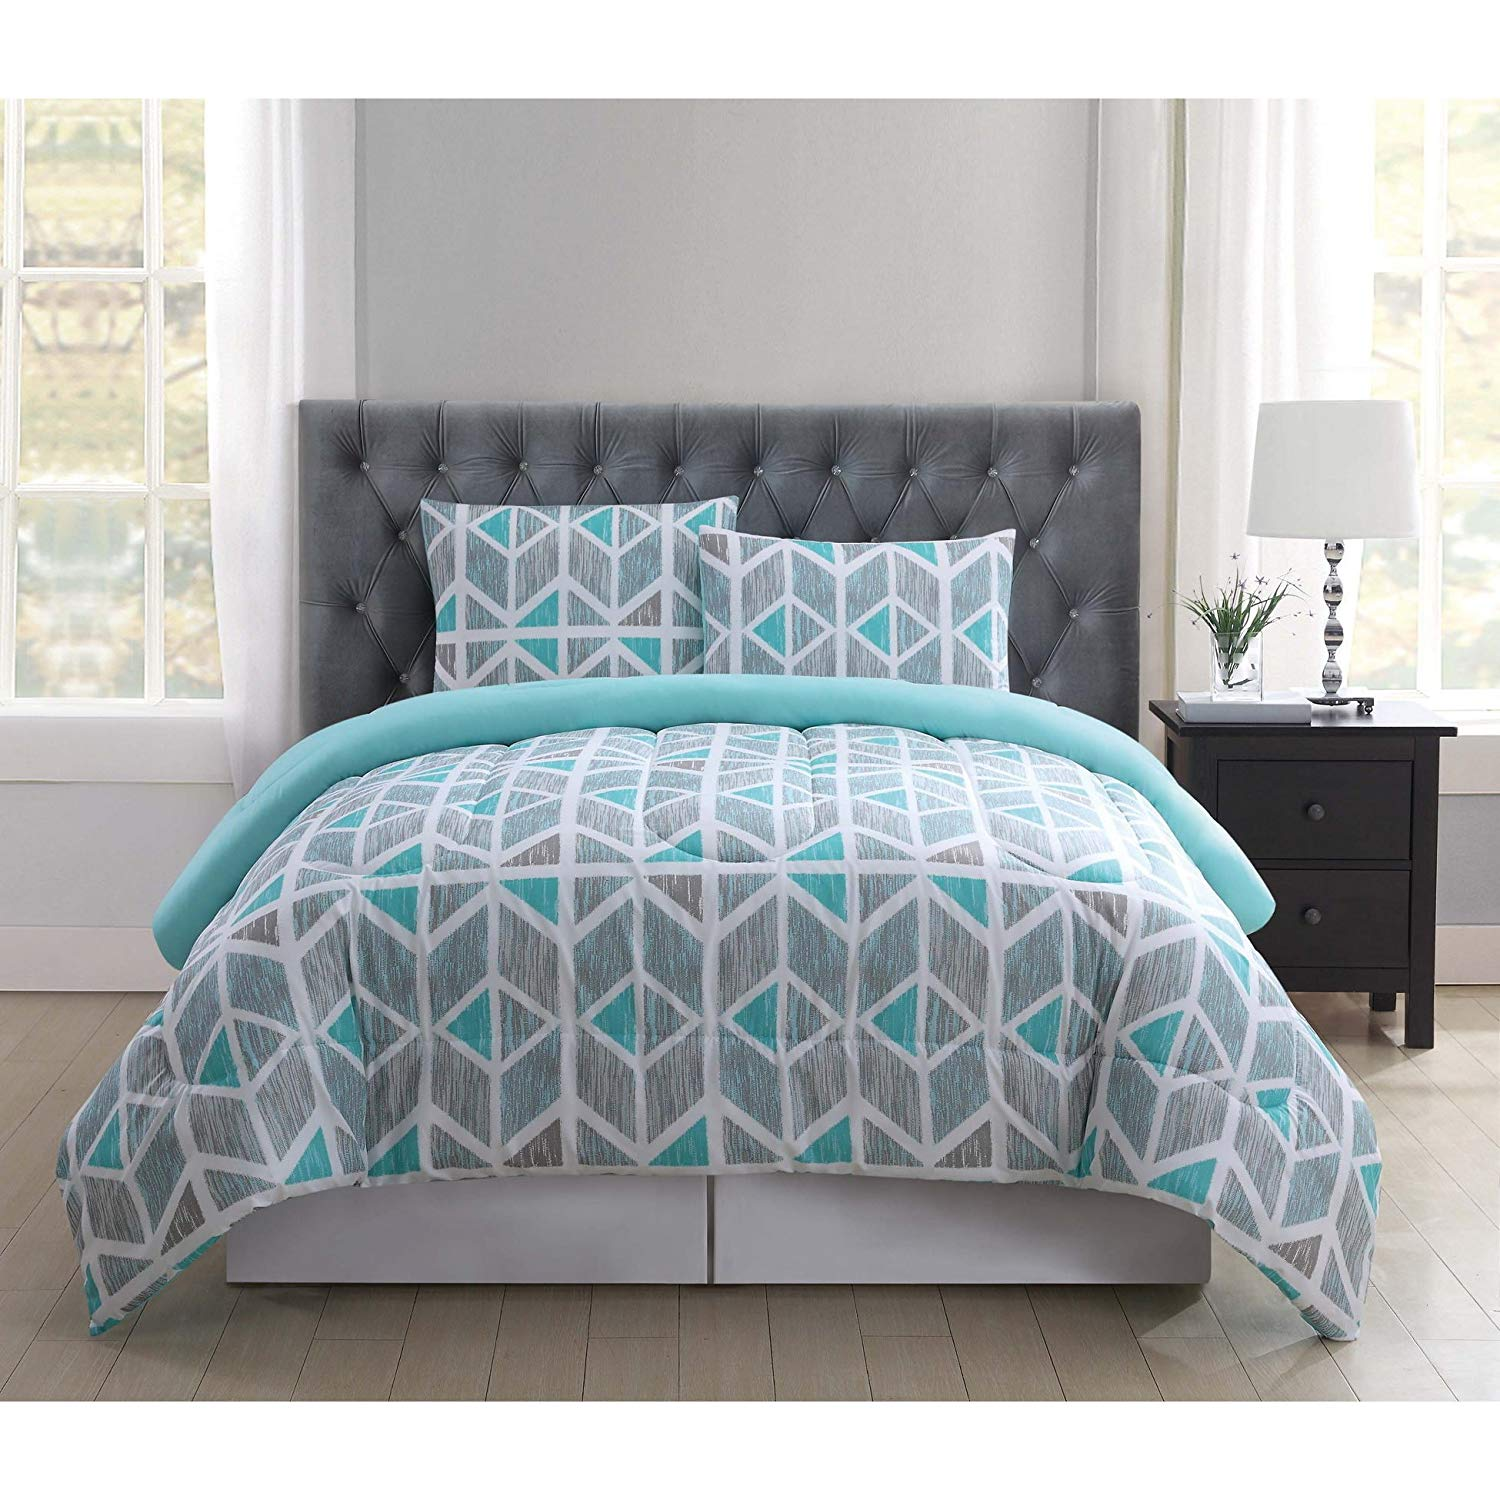 TL 3 Piece Teal Grey White Geometric Triangle Printed Comforter Set King, Blue Gray Graphic Shapes Ikat Pattern Stripes Line Adult Bedding Master Bedroom Casual Colorful Fancy, Polyester